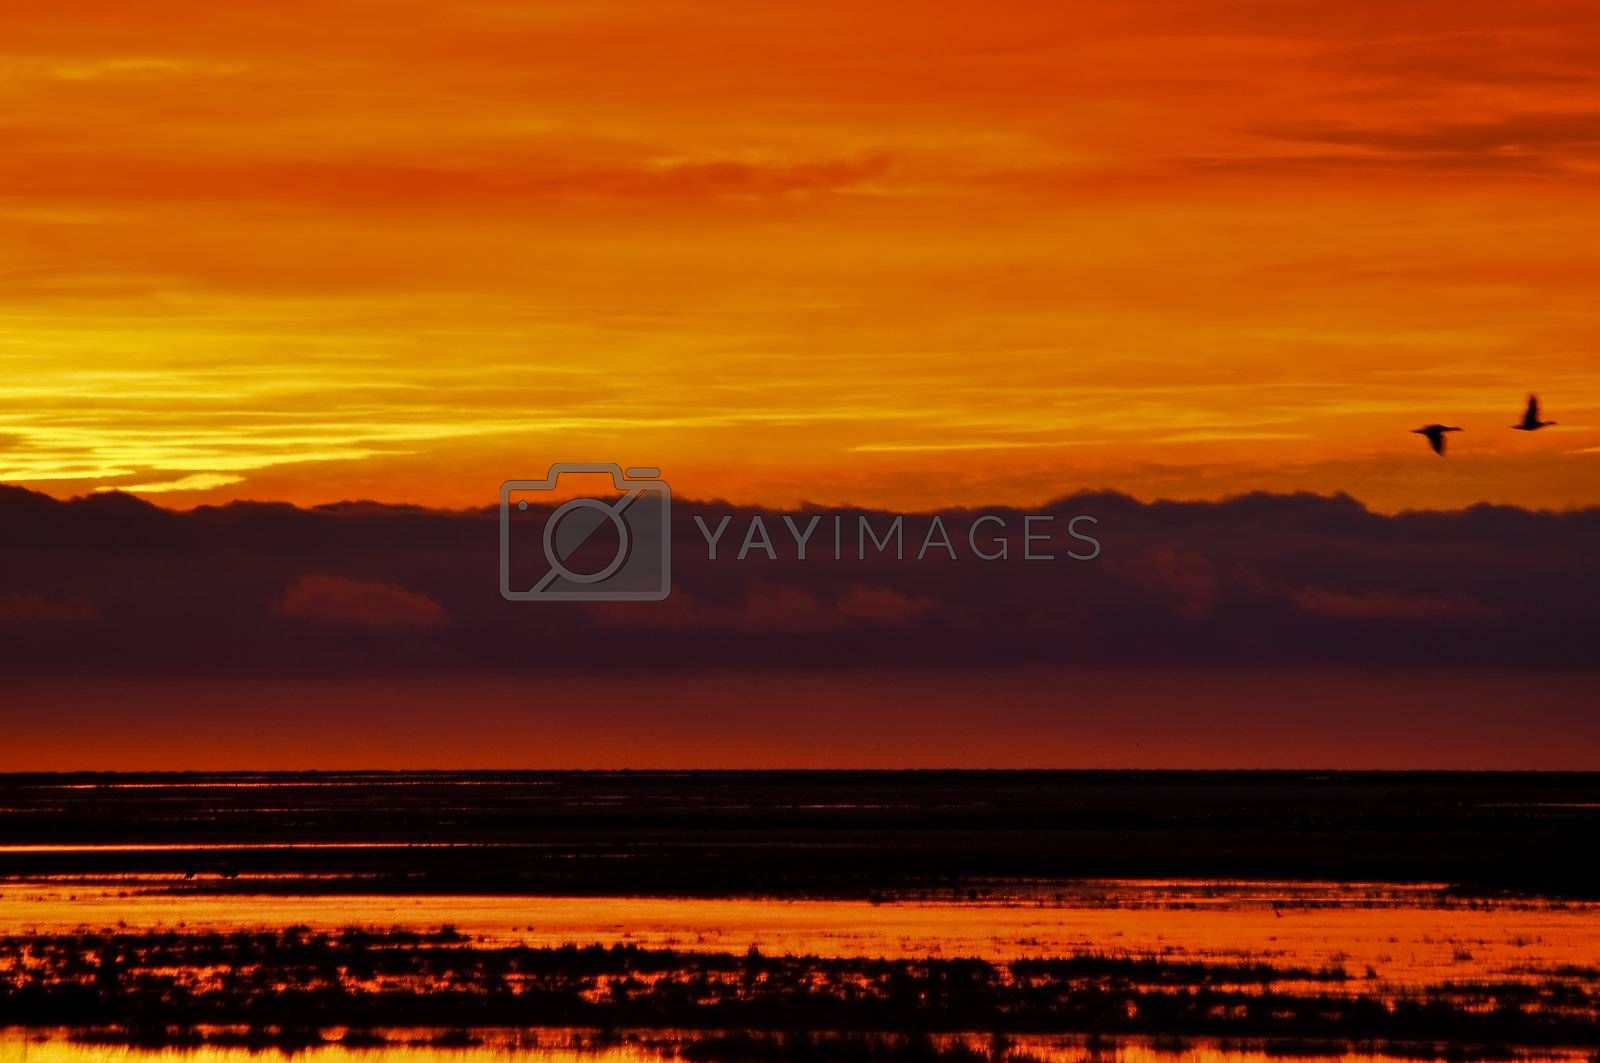 An orange and yellow sunrise in Tierra del Fuego, Argentina.